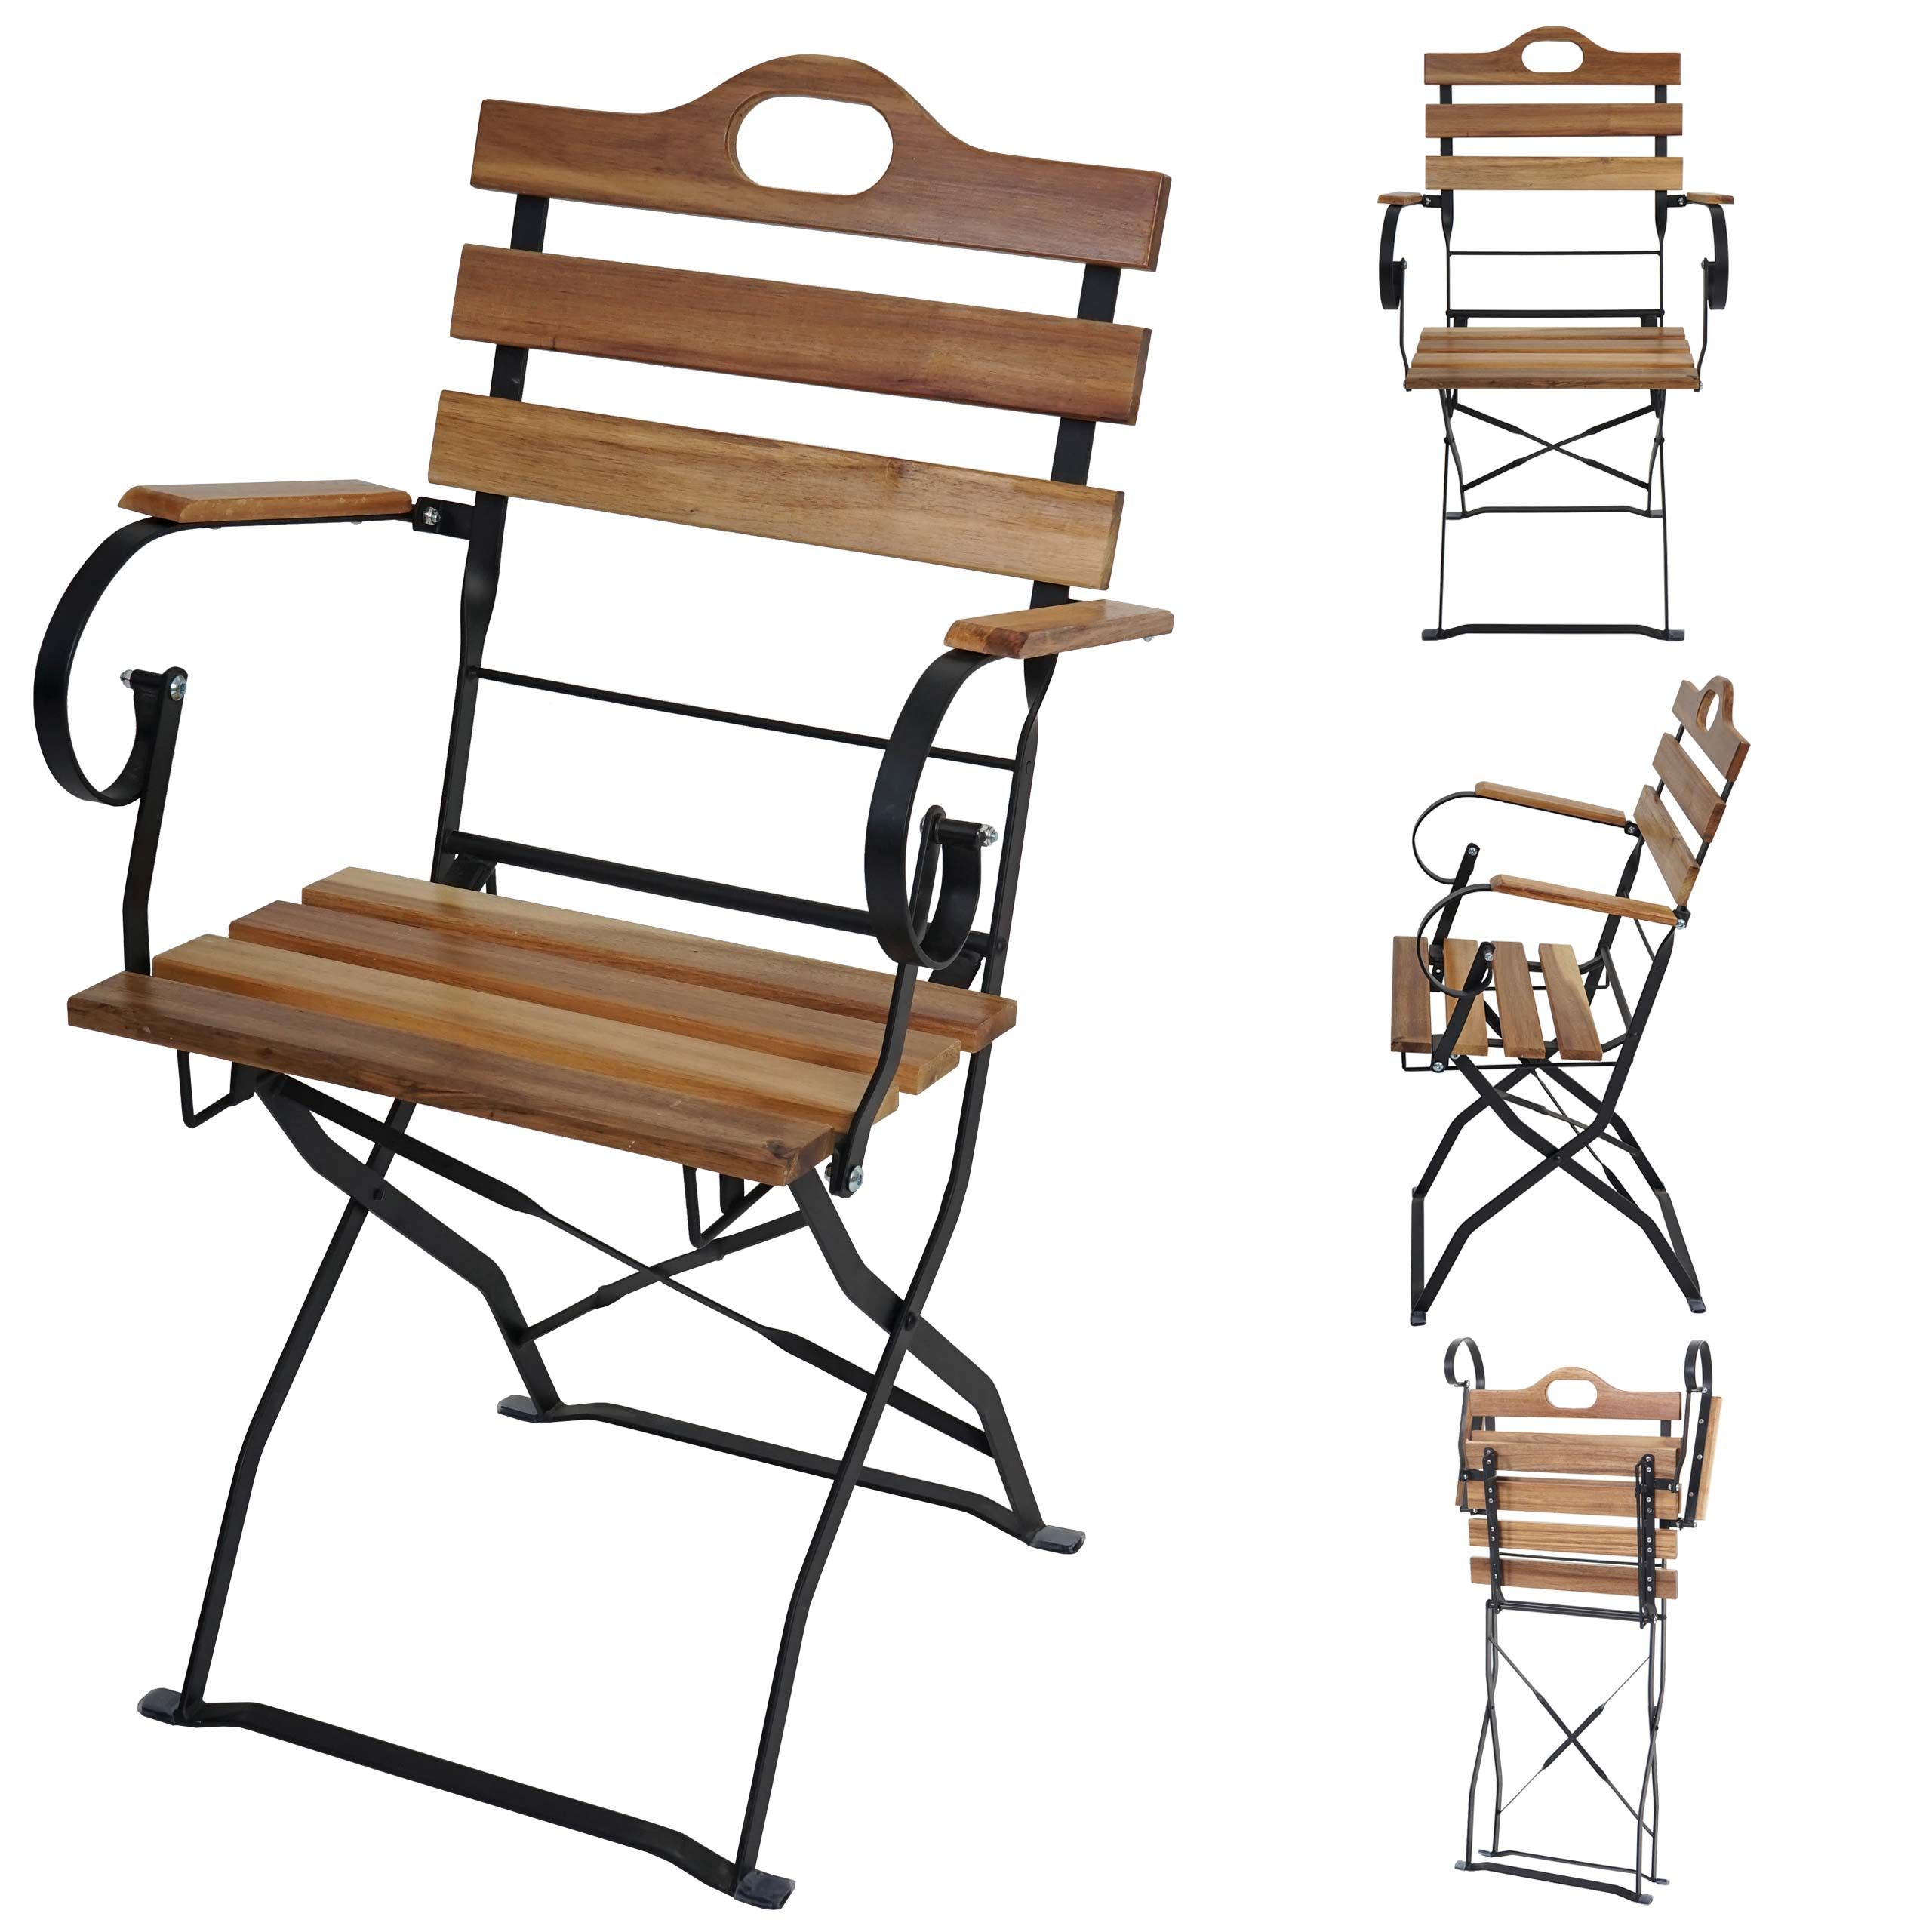 4x biergartenstuhl wien klappstuhl gartenstuhl akazie ge lt natur ebay. Black Bedroom Furniture Sets. Home Design Ideas